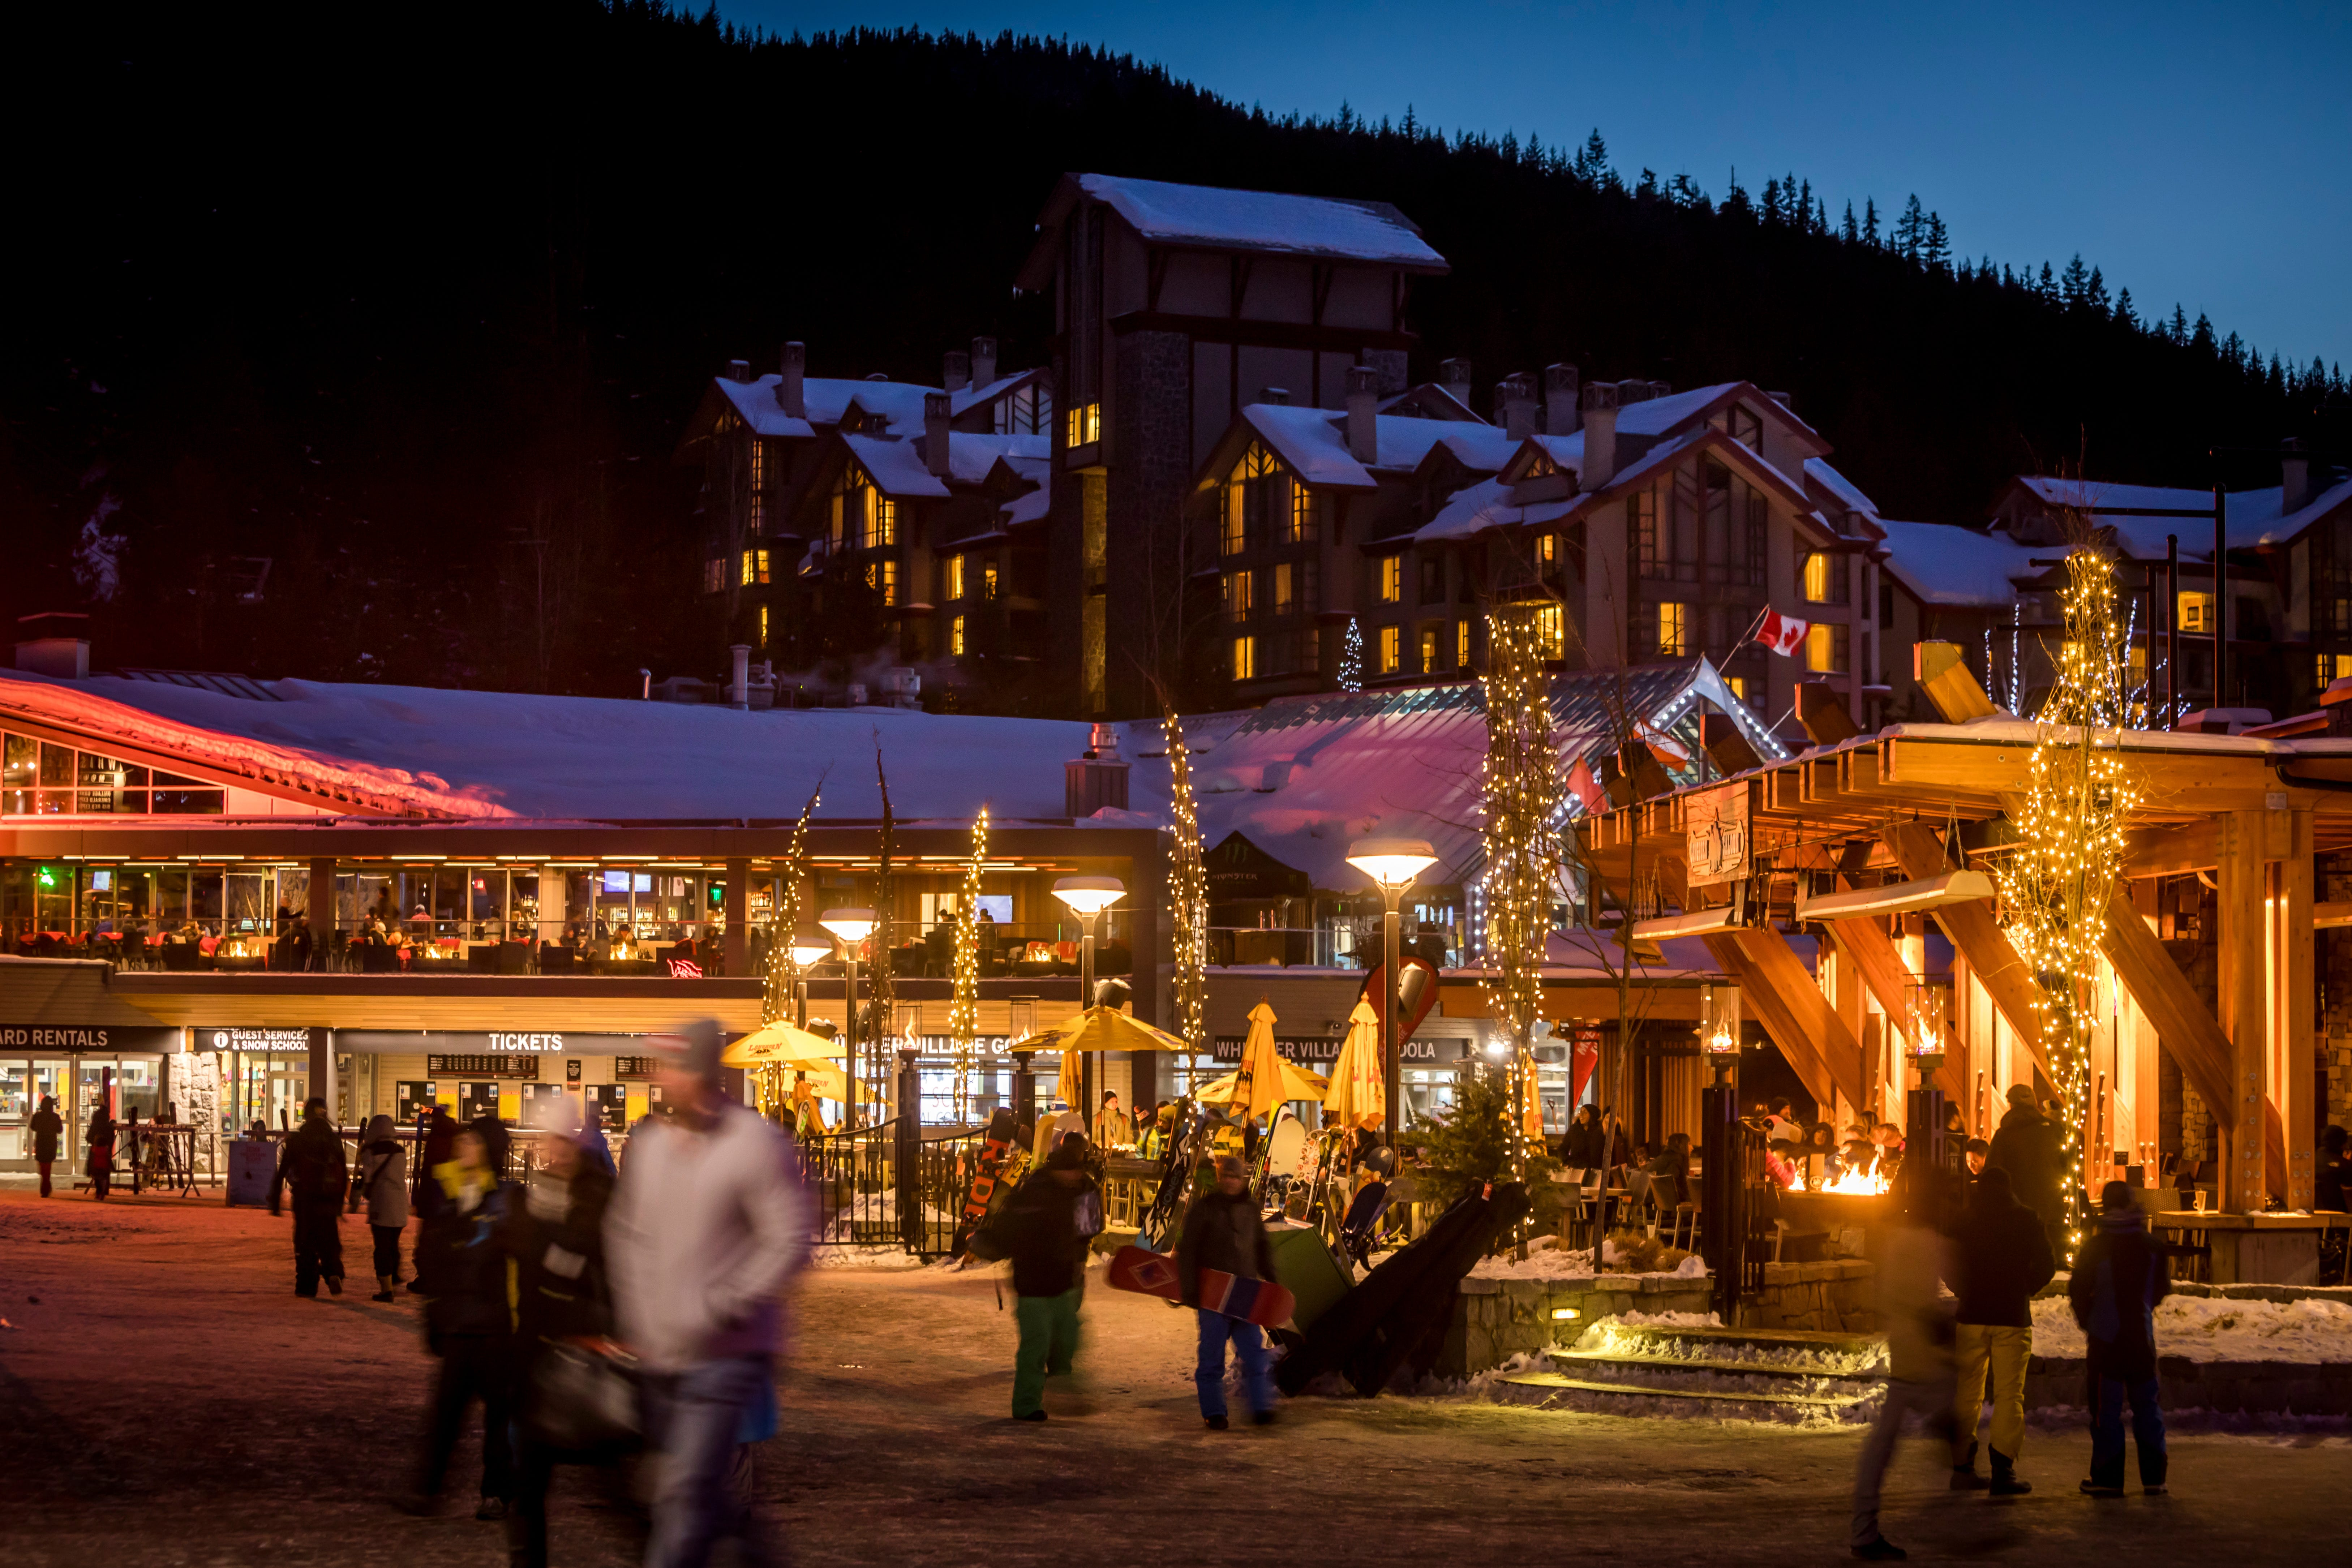 Nightlife is immeasurable in Whistler Village, with lots of bars, restaurants and shops, all simply accessed on foot.